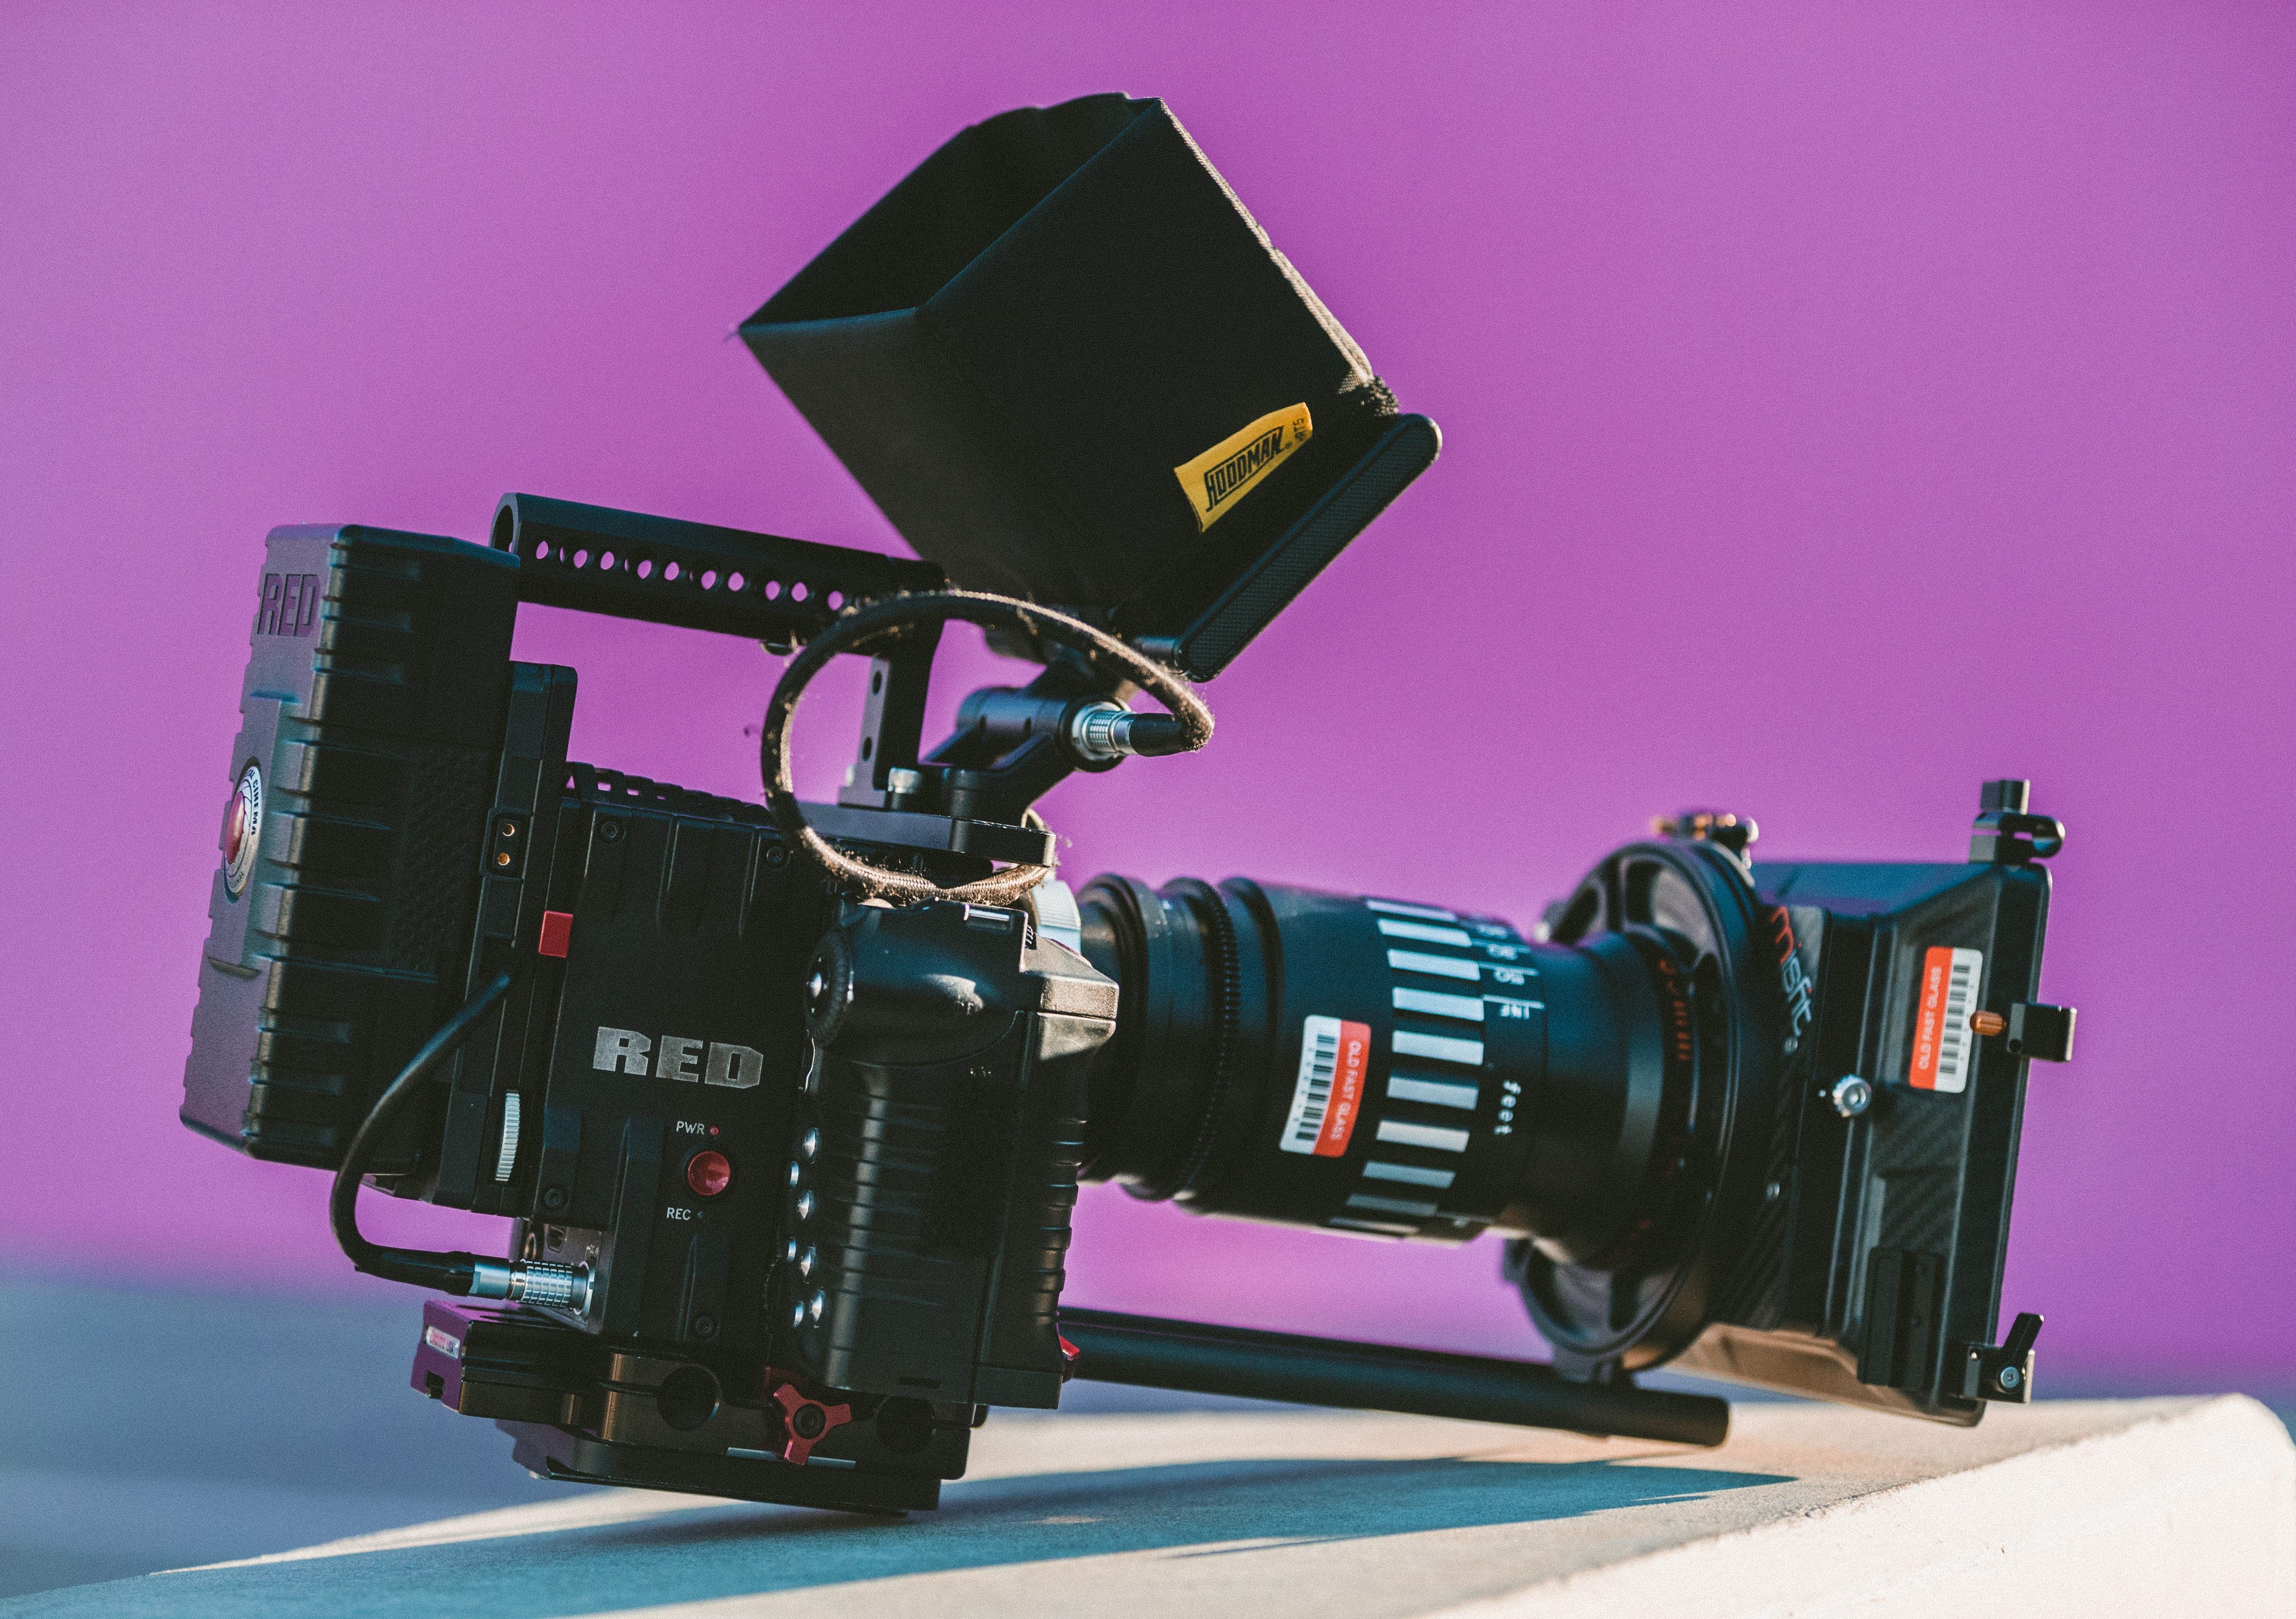 Video camera used for marketing video production